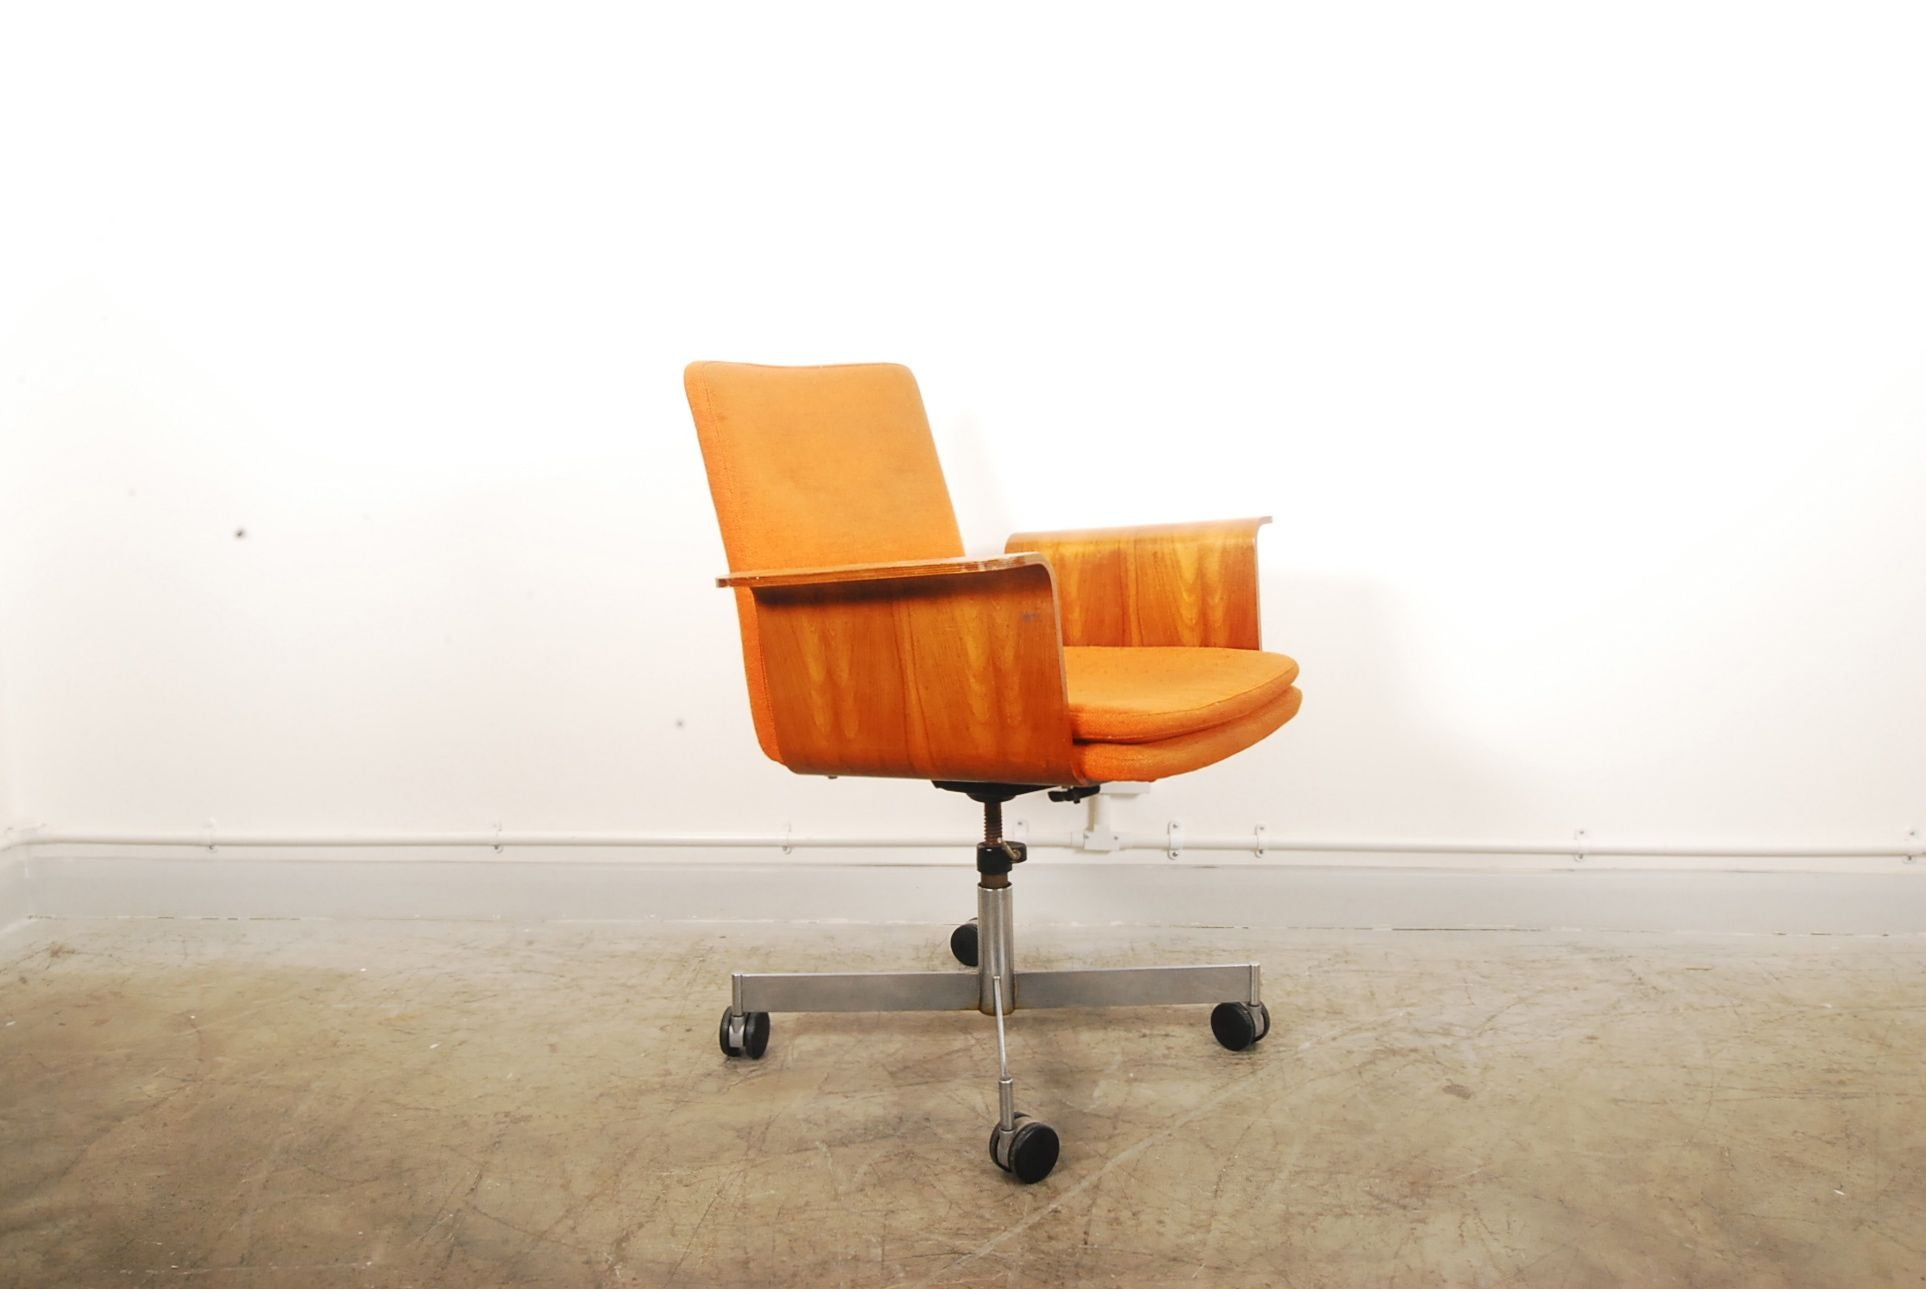 Chase & Sorensen Desk chair by KEVI